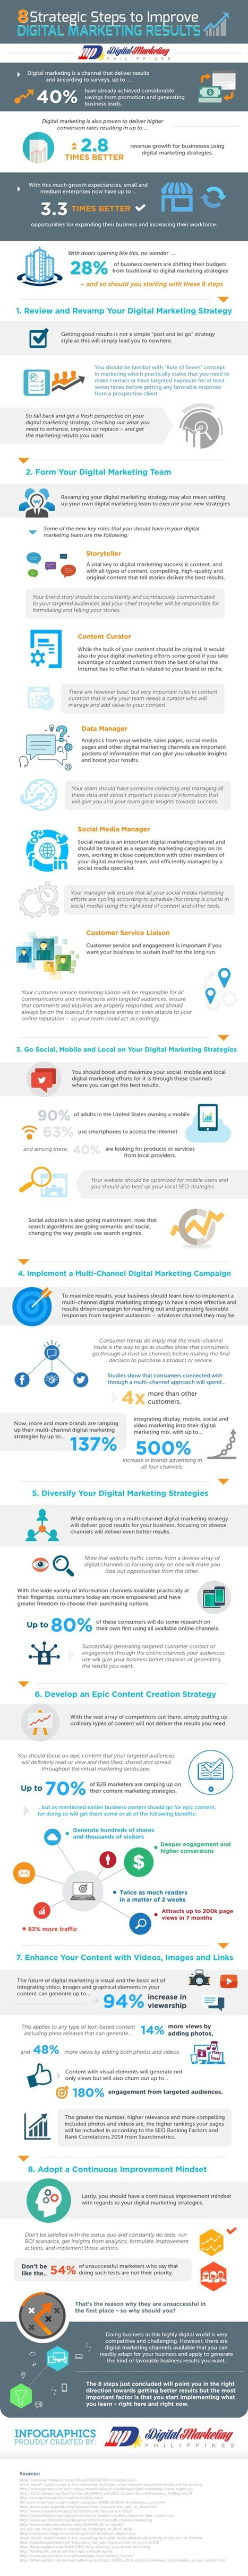 8 Steps to Improve Your Digital Marketing Results | Marketing Technology | Integrated Brand Communications | Scoop.it